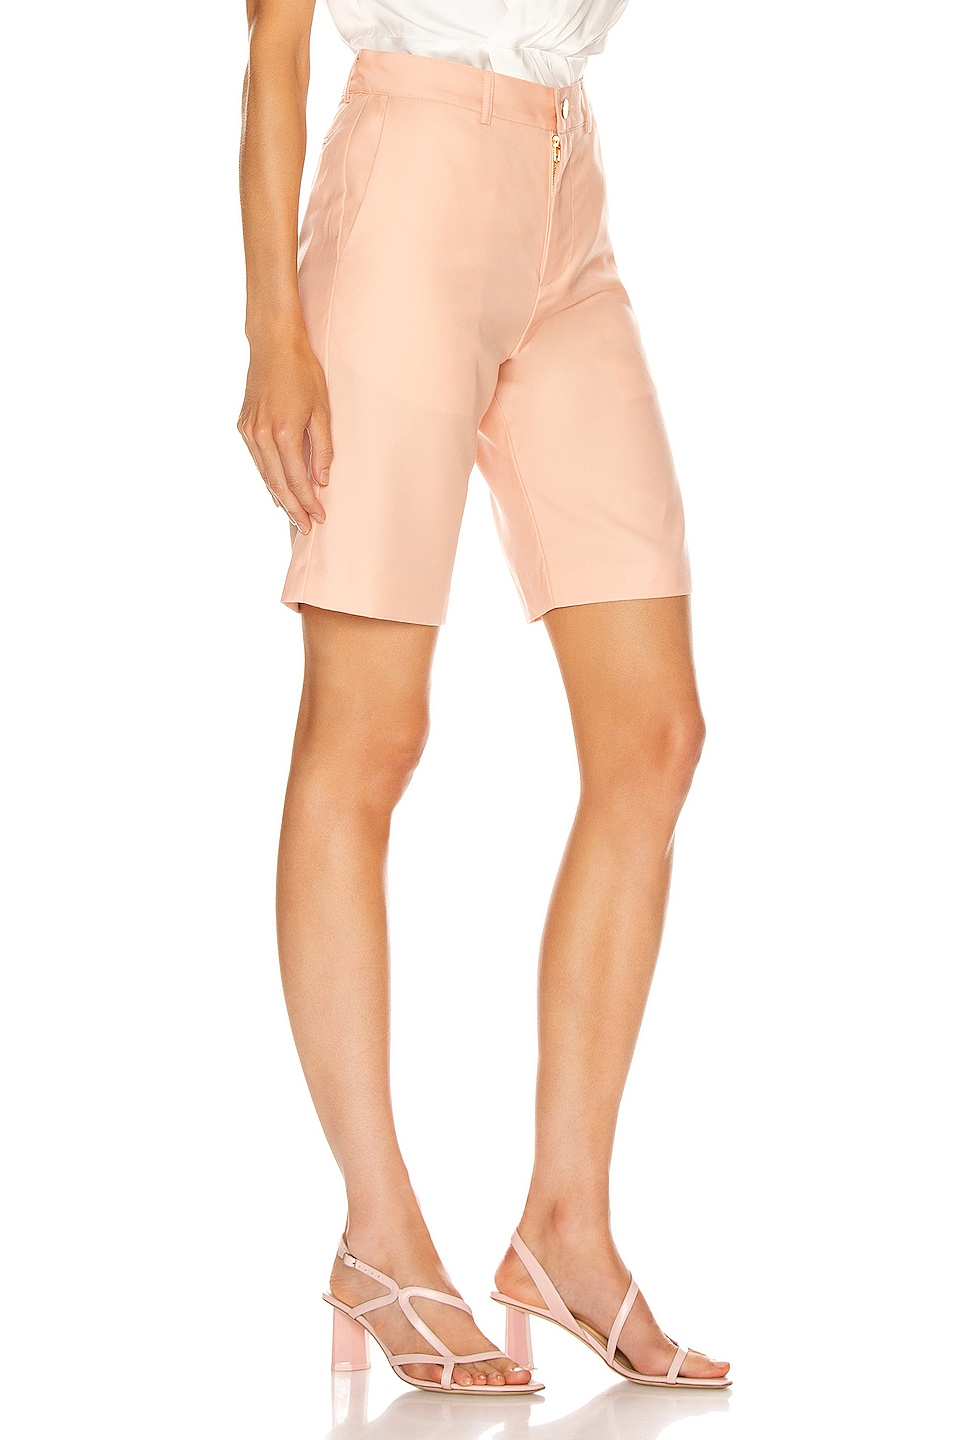 Image 2 of Maggie Marilyn Feeling Peachy Shorts in Peach